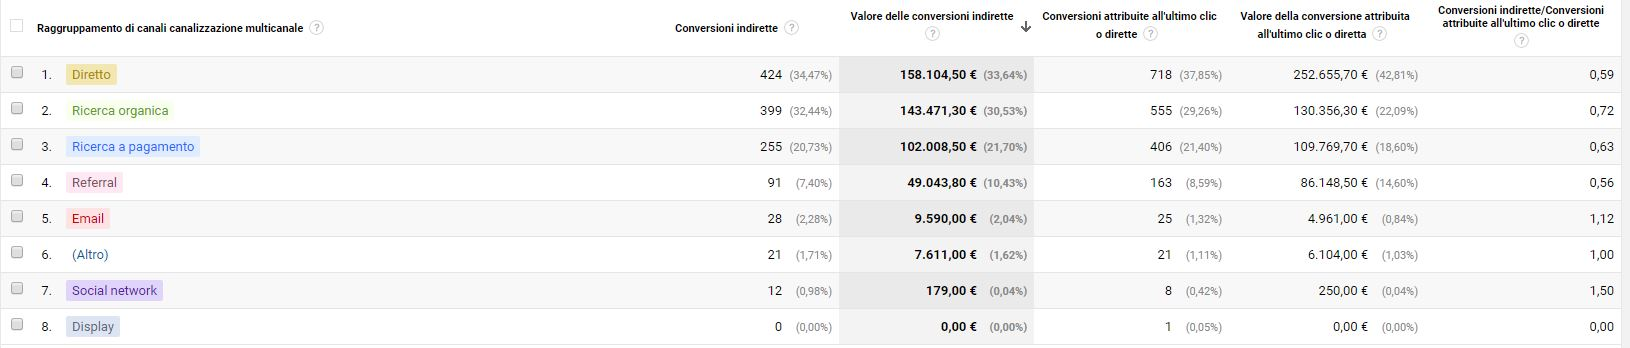 Report Conversioni > Conversioni indirette Google Analytics